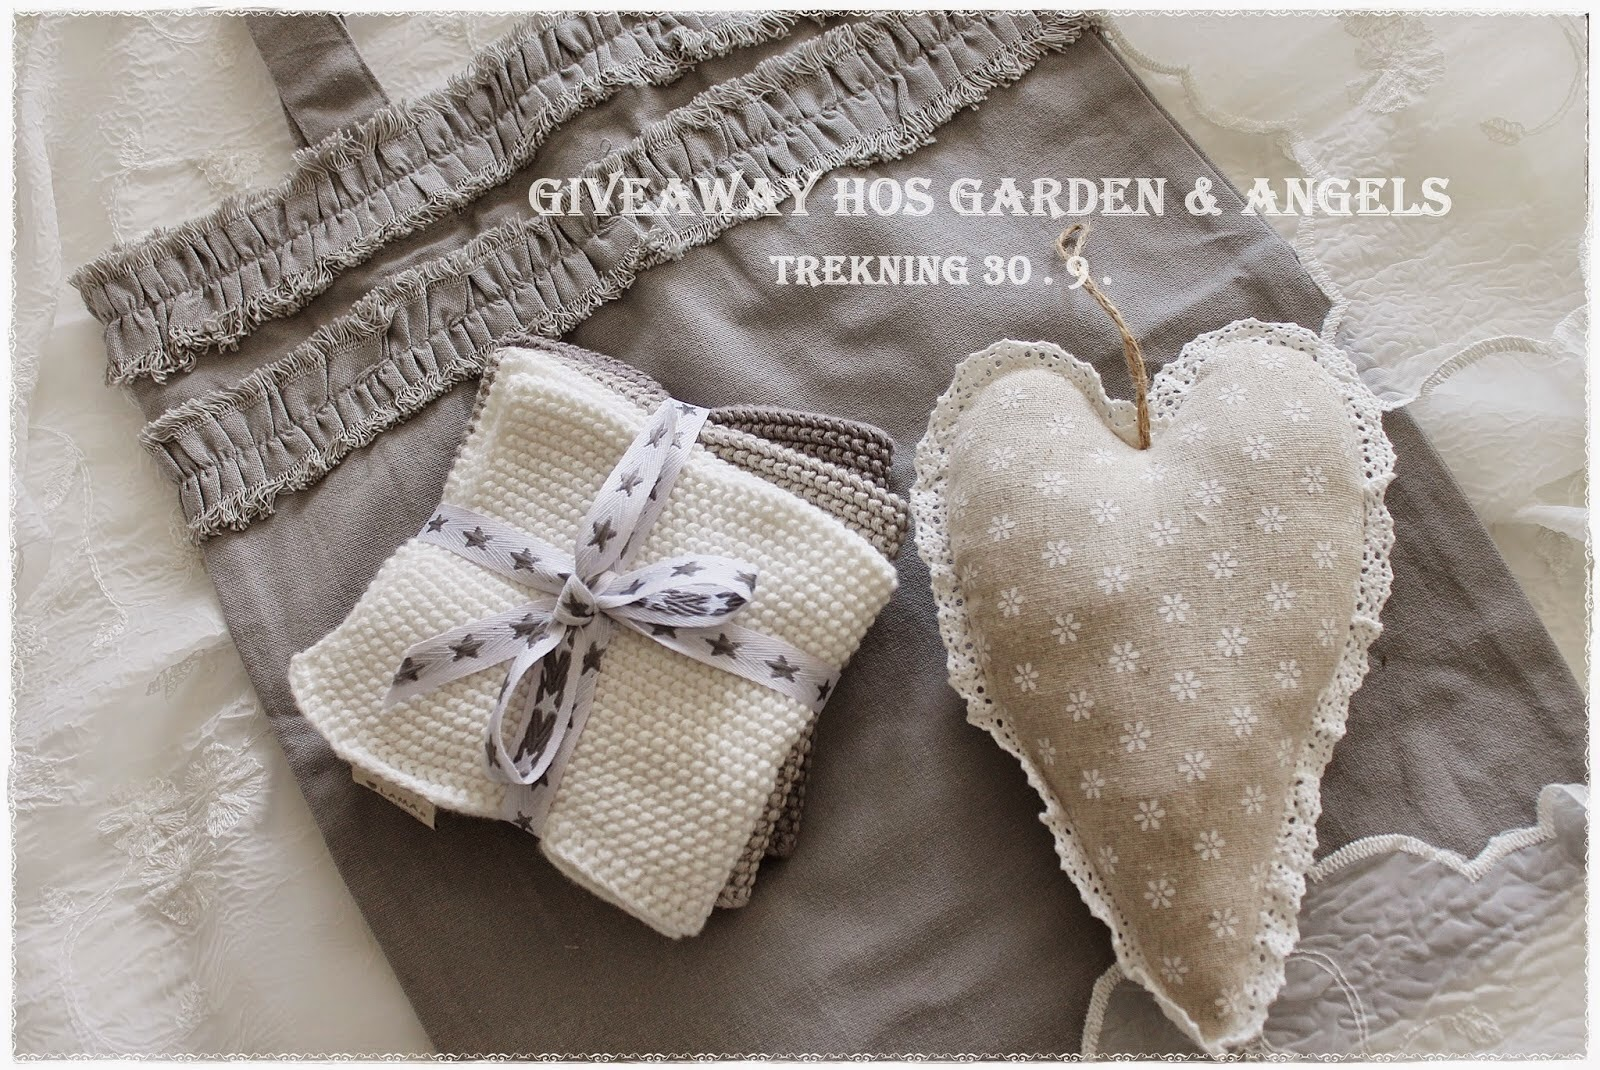 Give away hos Gardens and Angels